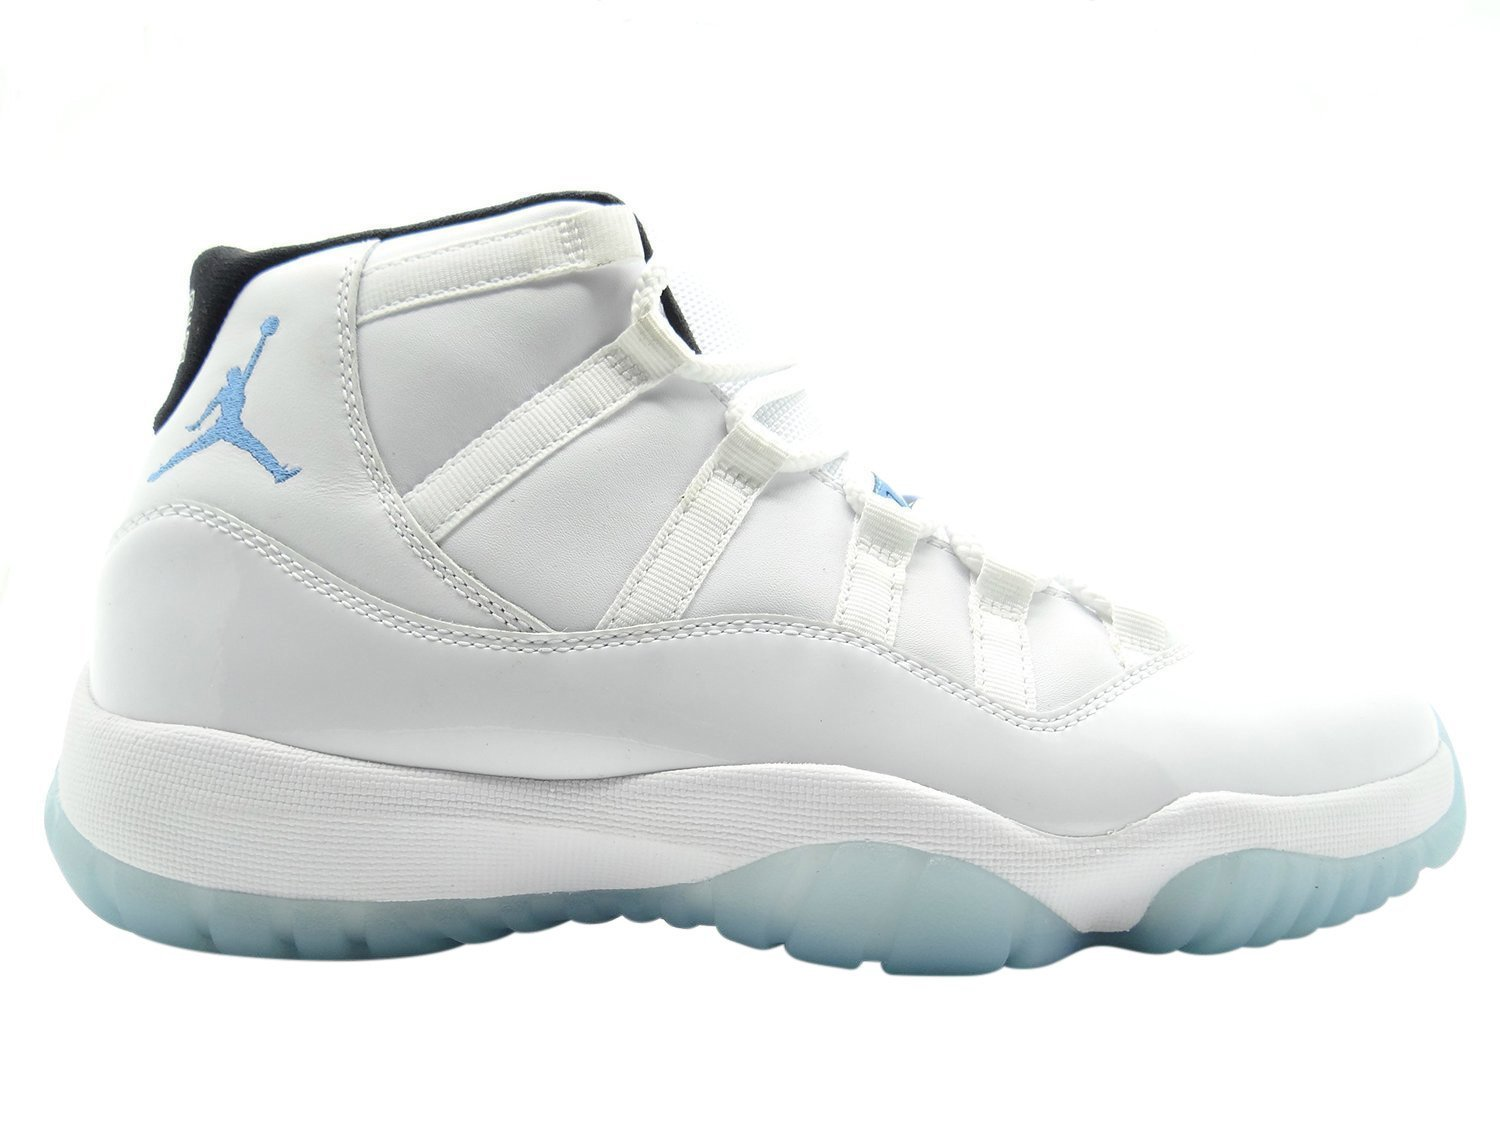 premium selection 072dc c4bc3 ... order get quotations nike air jordan retro 11 legend blue columbia  378037 117 13 1127b bd6c7